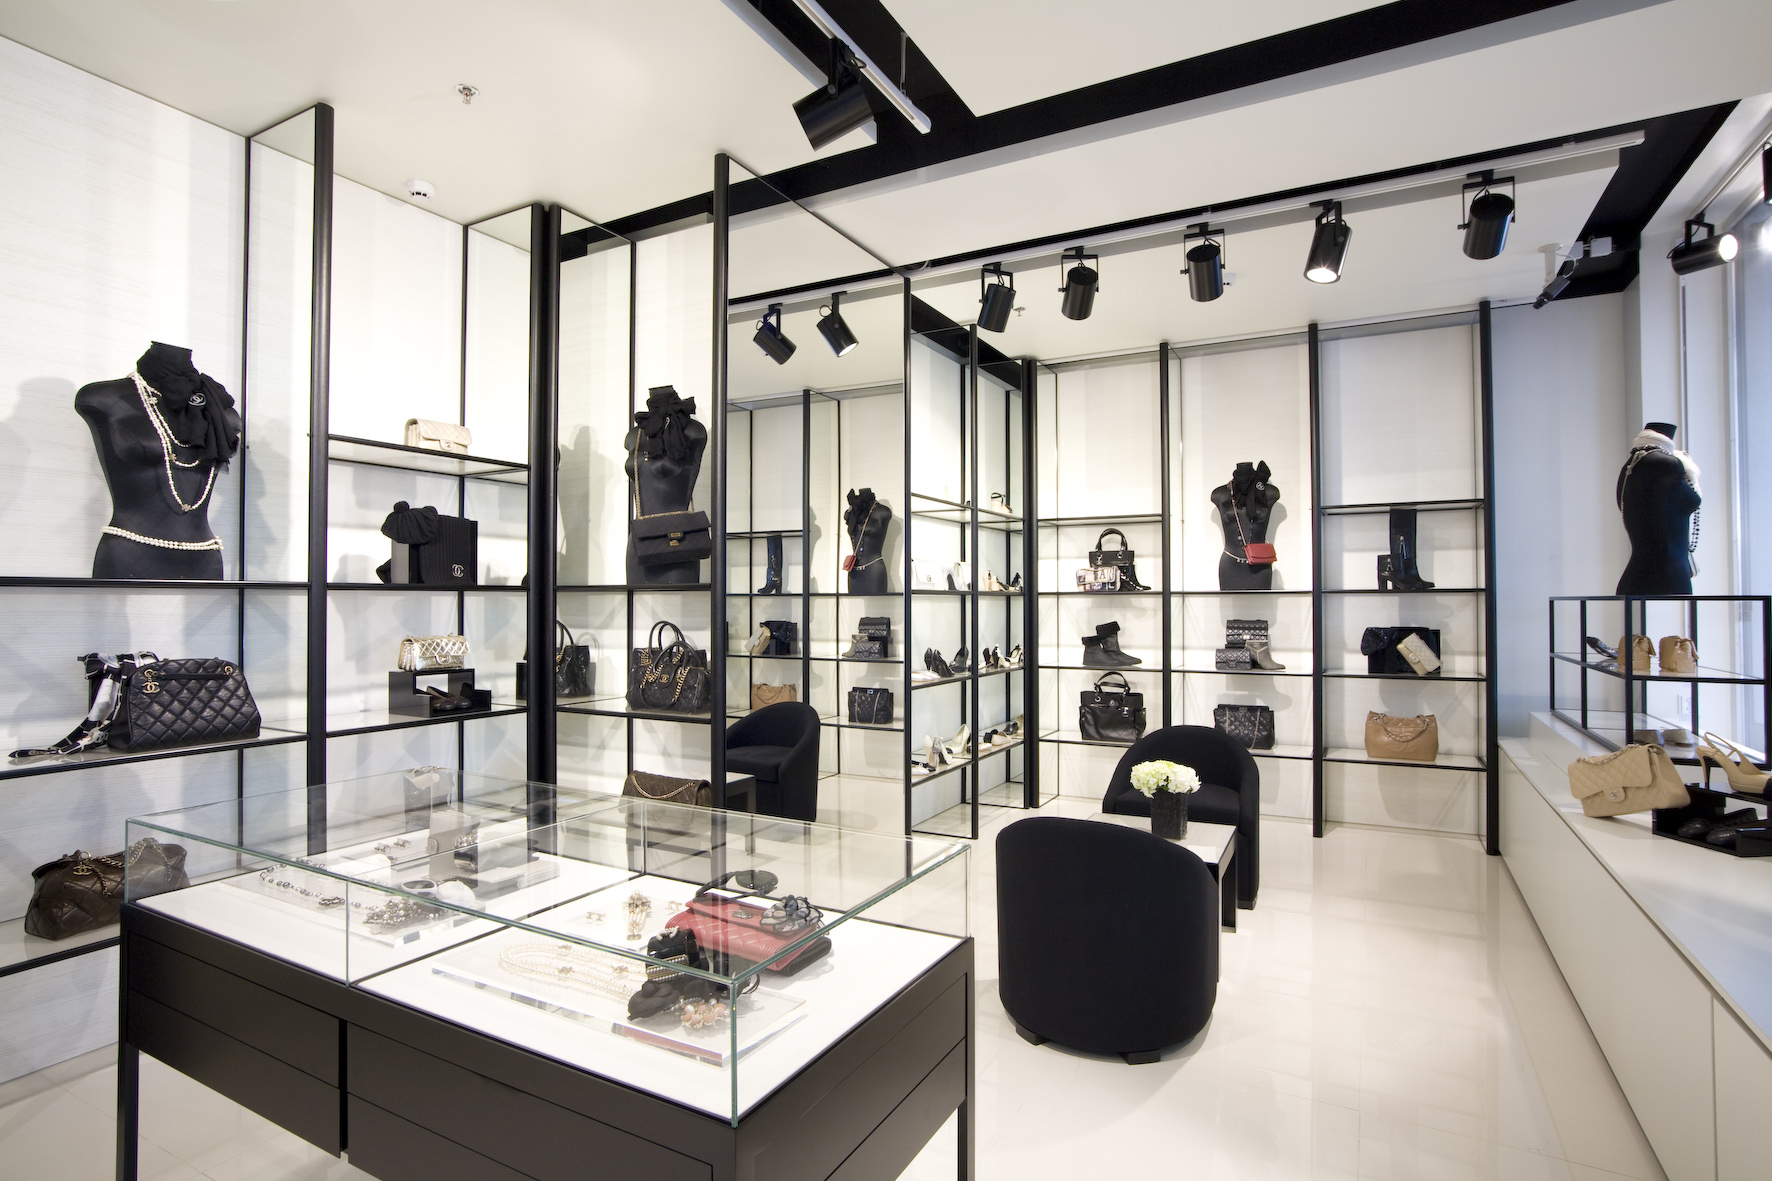 Della marga chanel shop in shop naisten ja miesten for Design d interieur boutique